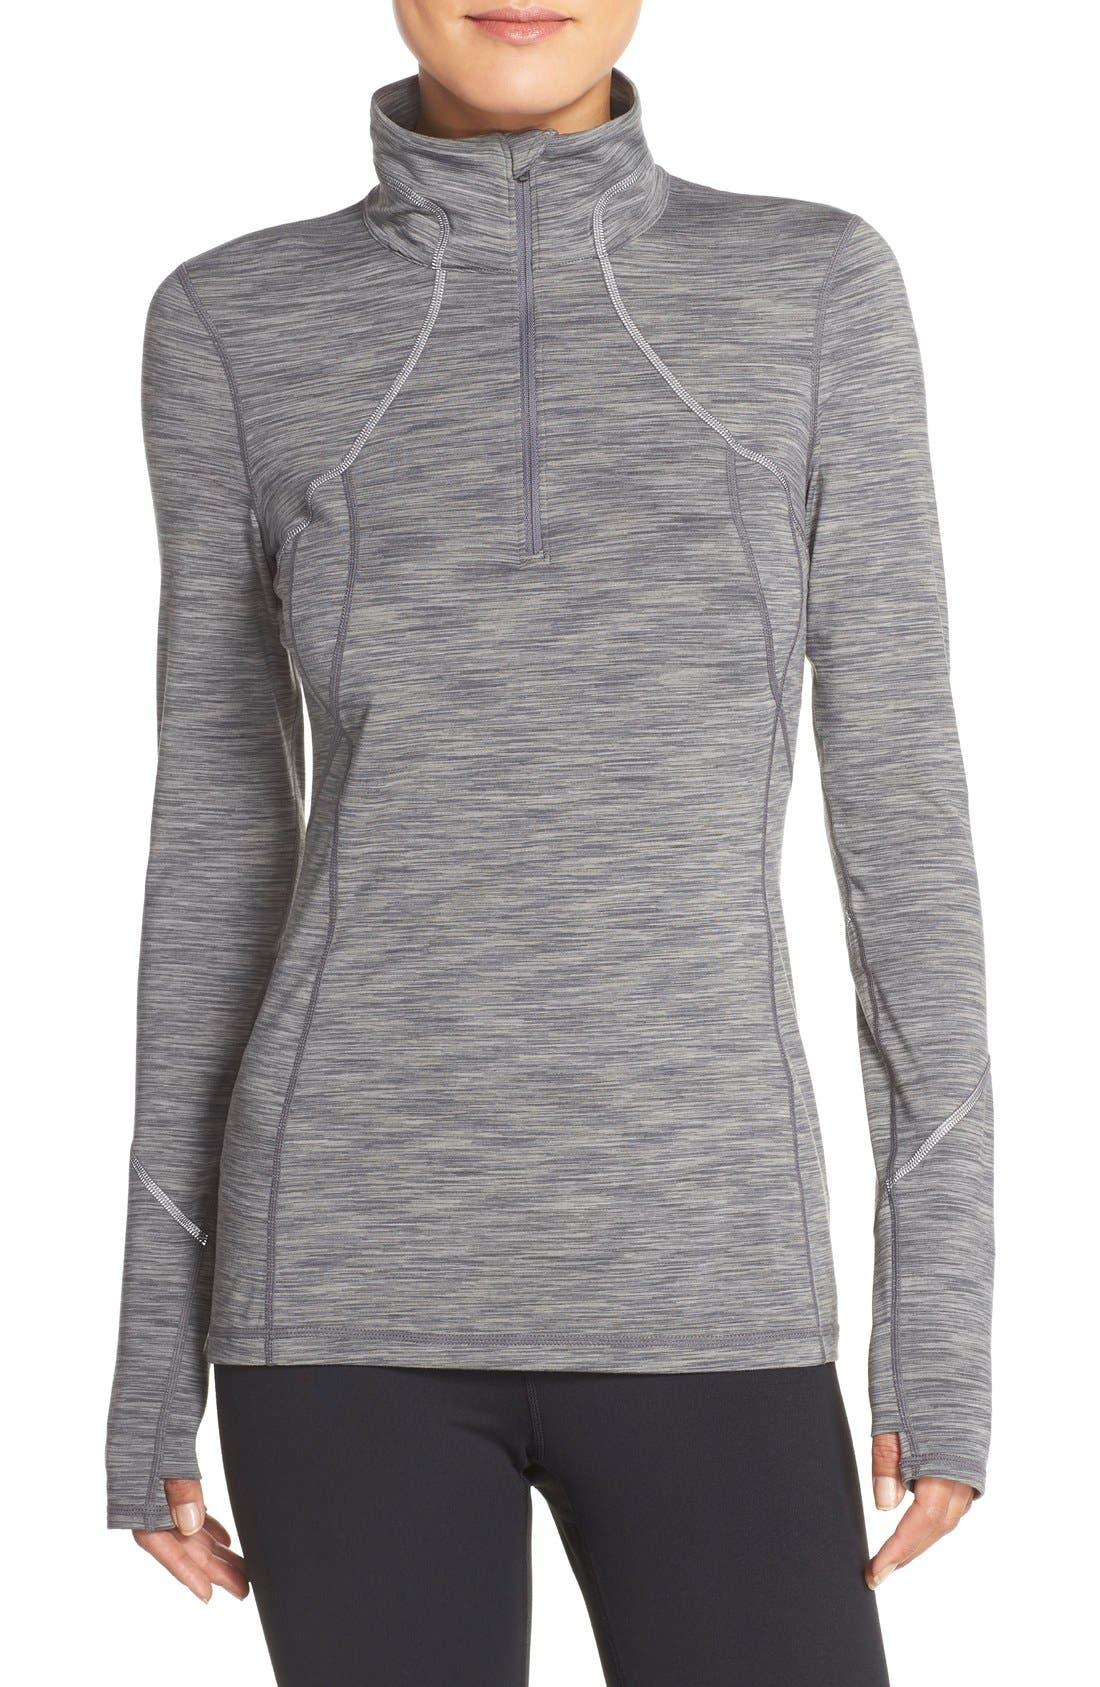 Alternate Image 1 Selected - Zella 'Revelation' Half Zip Top